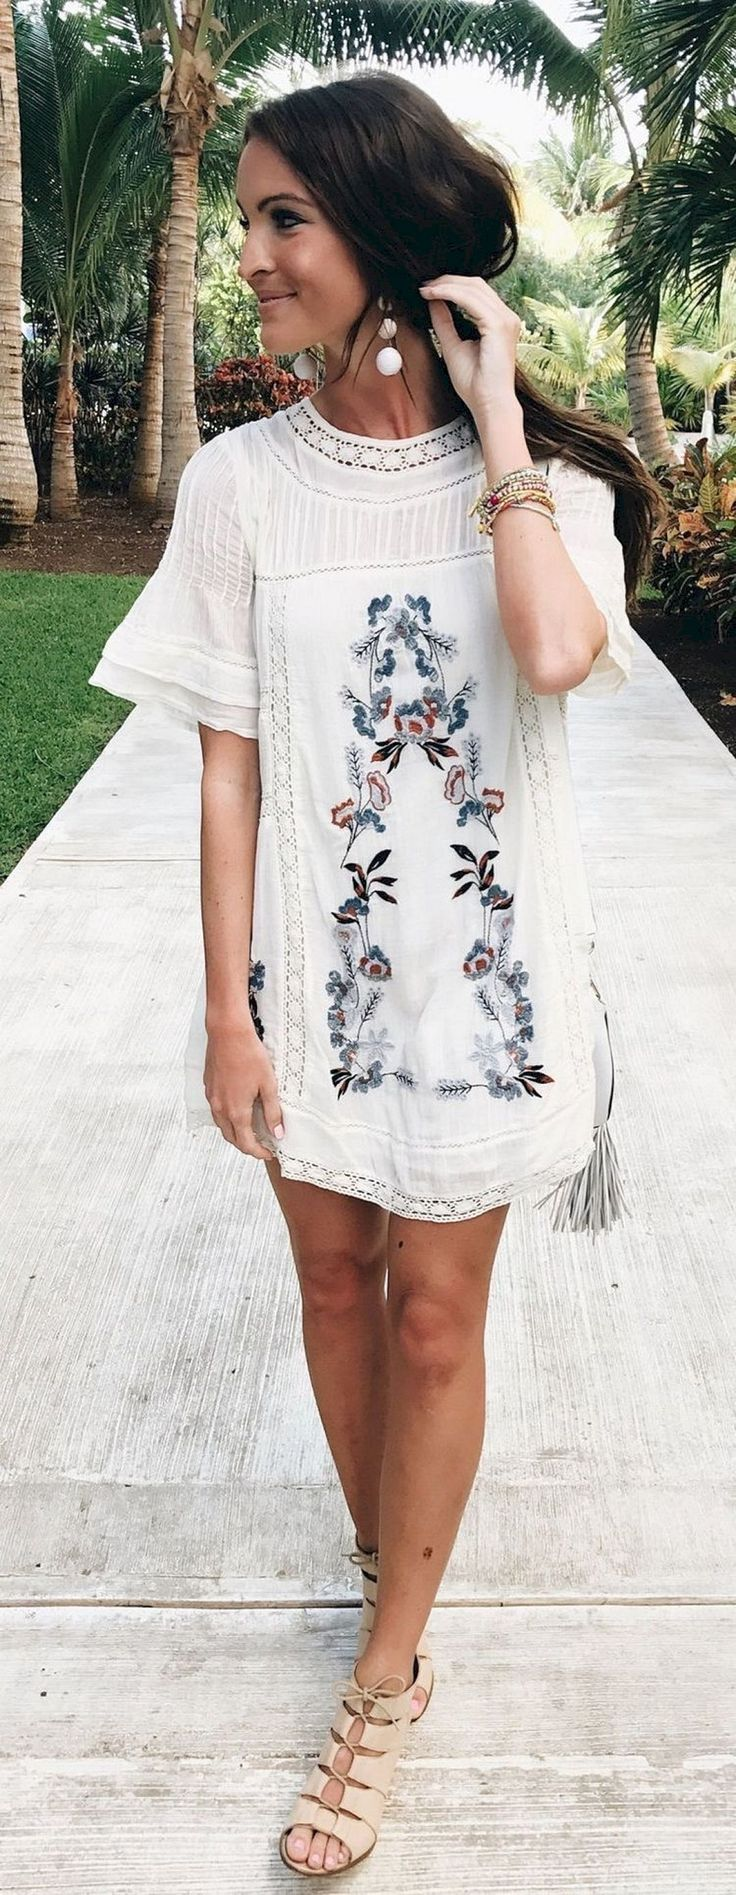 best my style images on Pinterest  Casual wear For women and